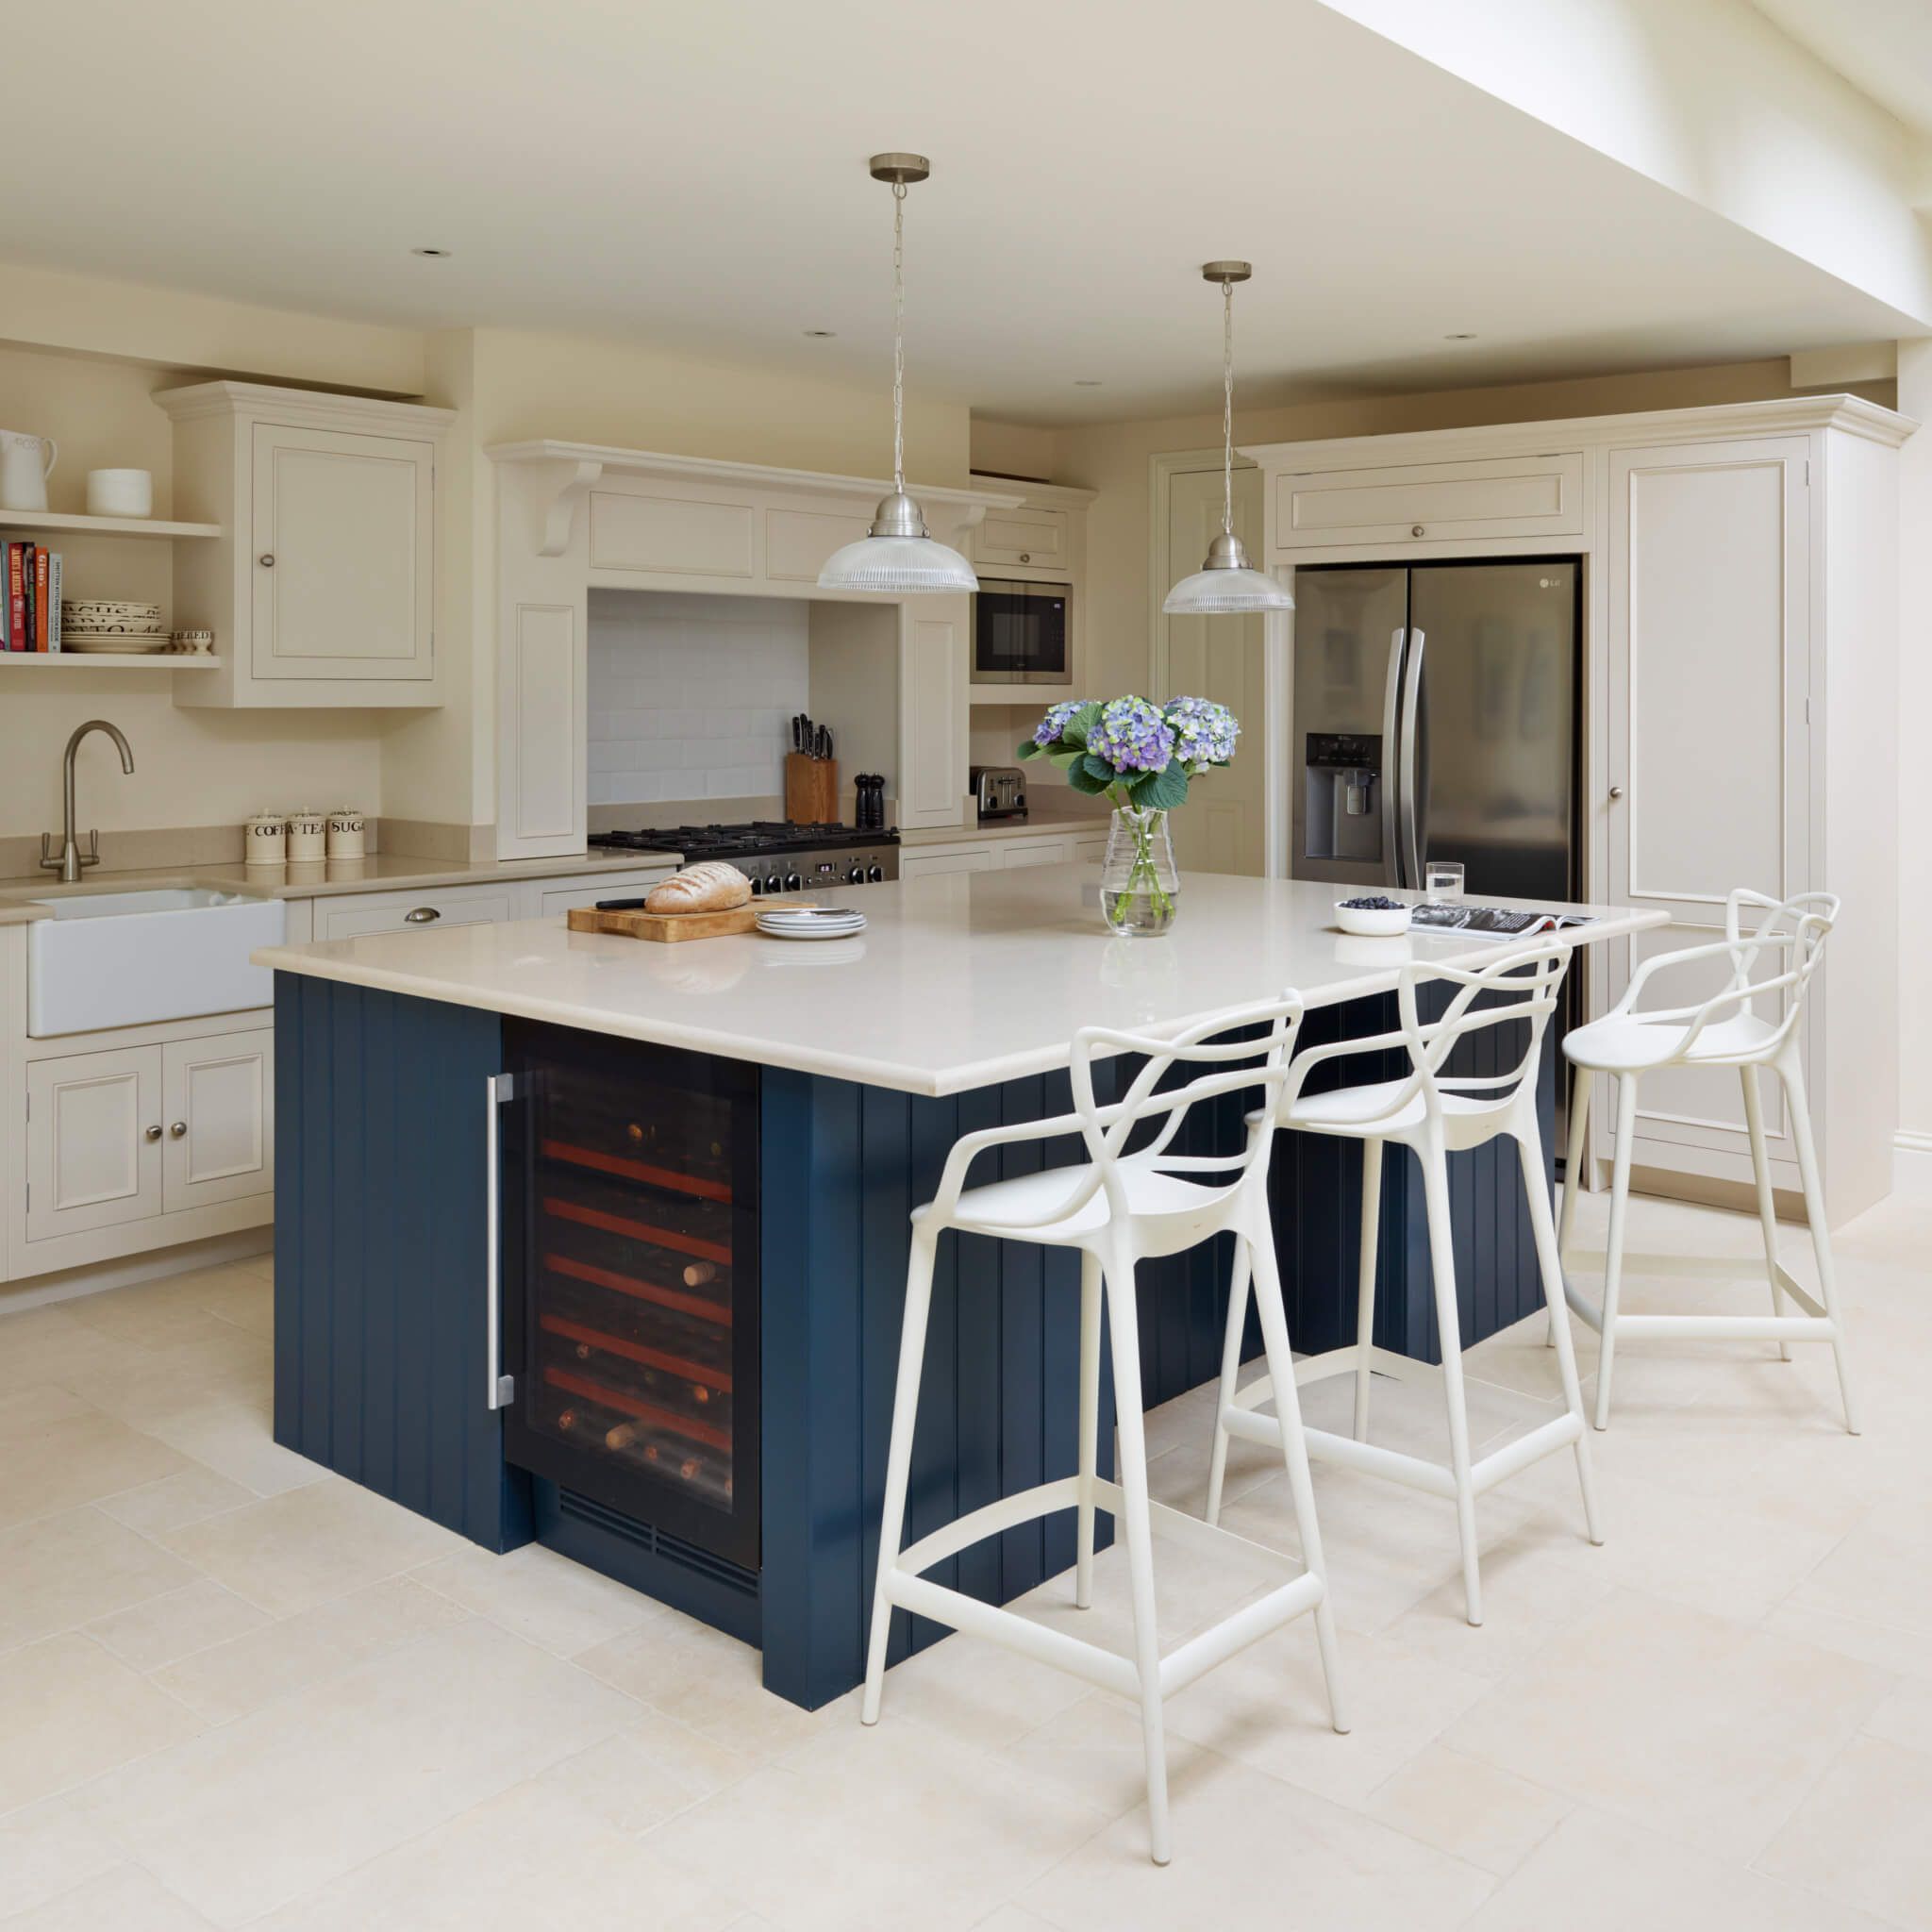 Latest Projects Open-Plan Original Kitchen Design